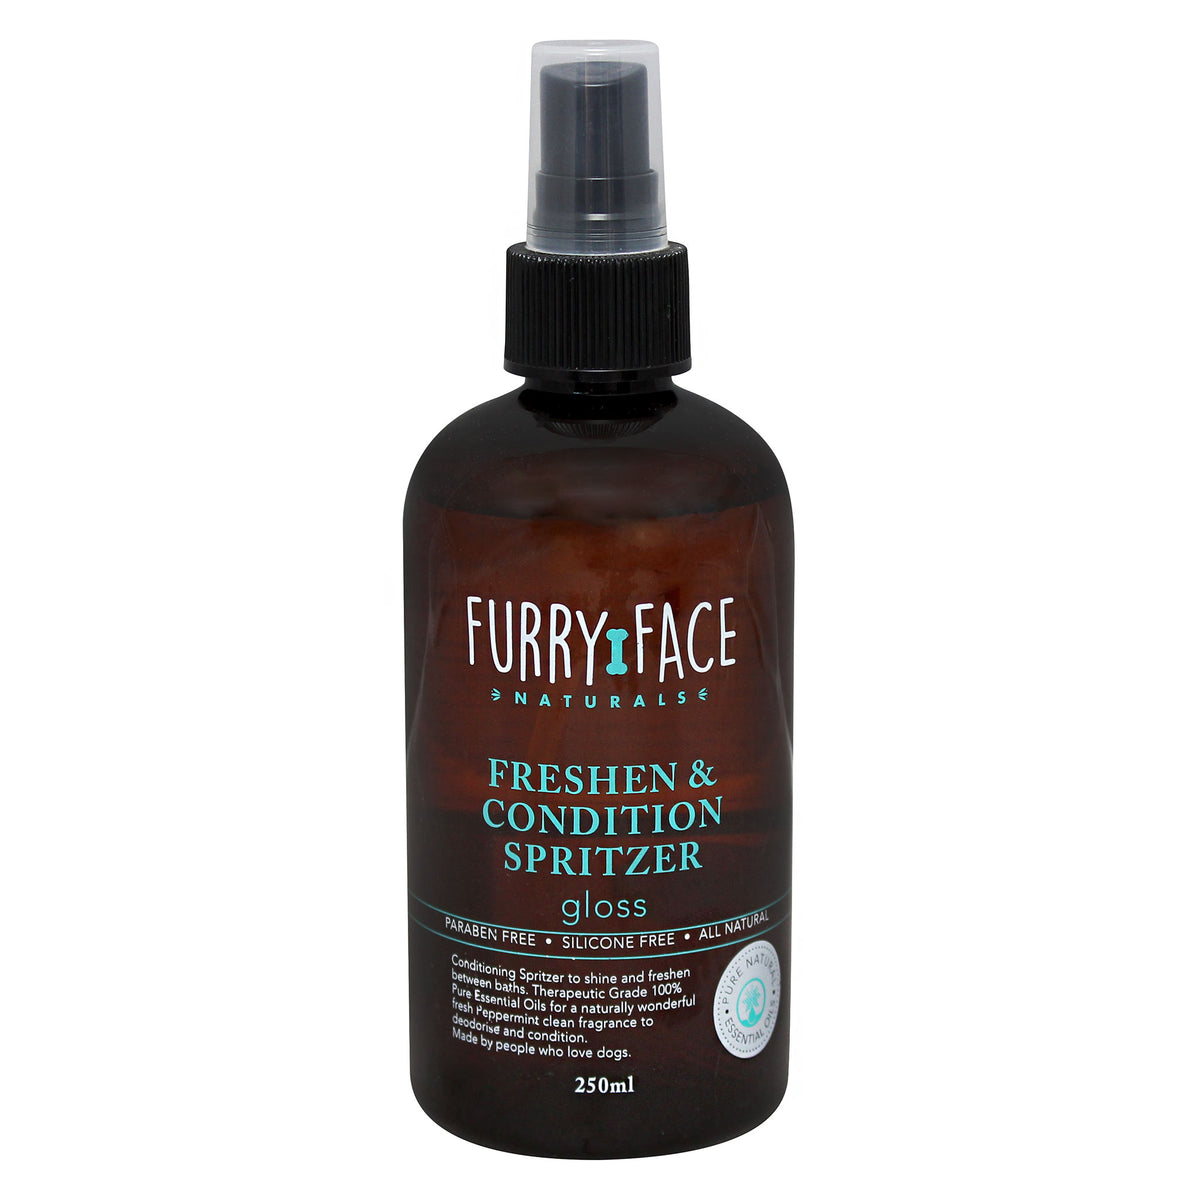 Furry Face Naturals Freshen Condition Spritzer - Gloss 250mL